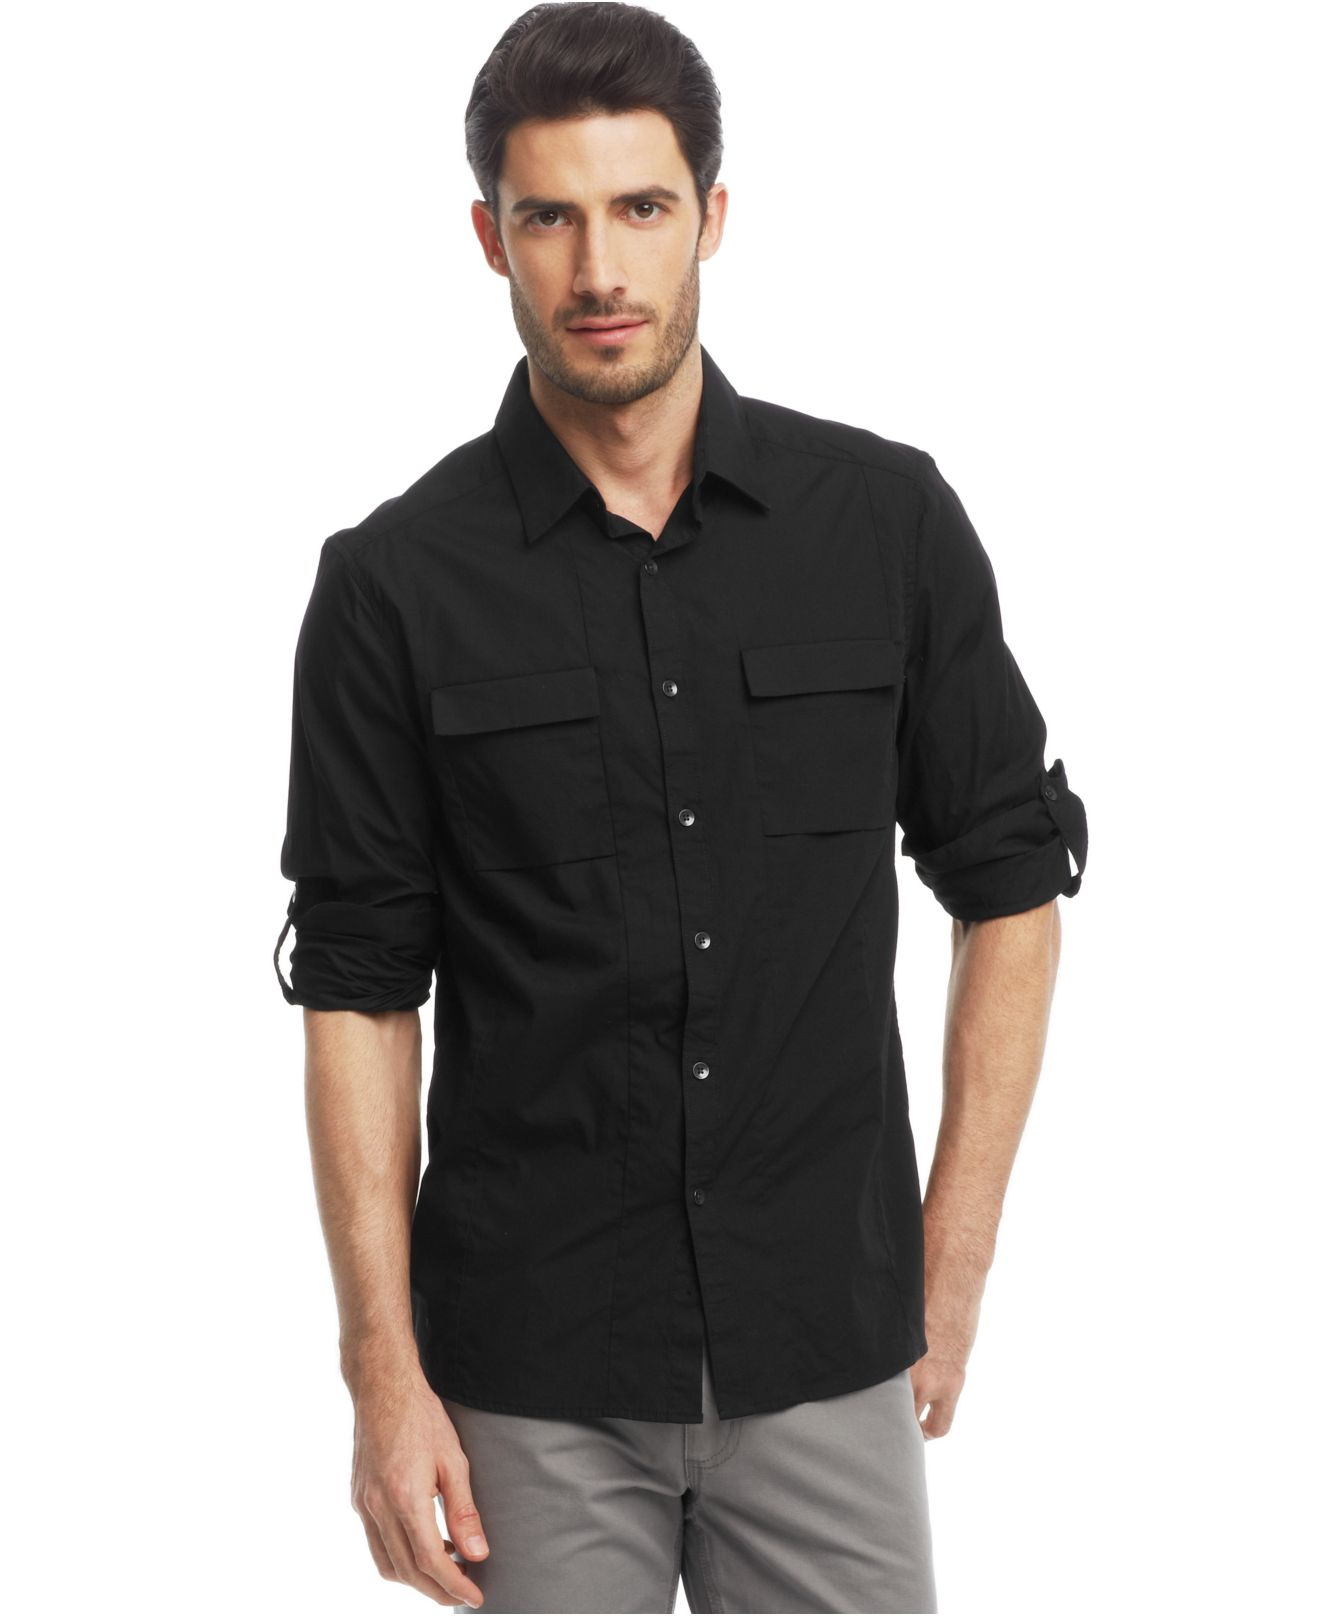 Find great deals on eBay for roll up sleeve shirt mens. Shop with confidence.